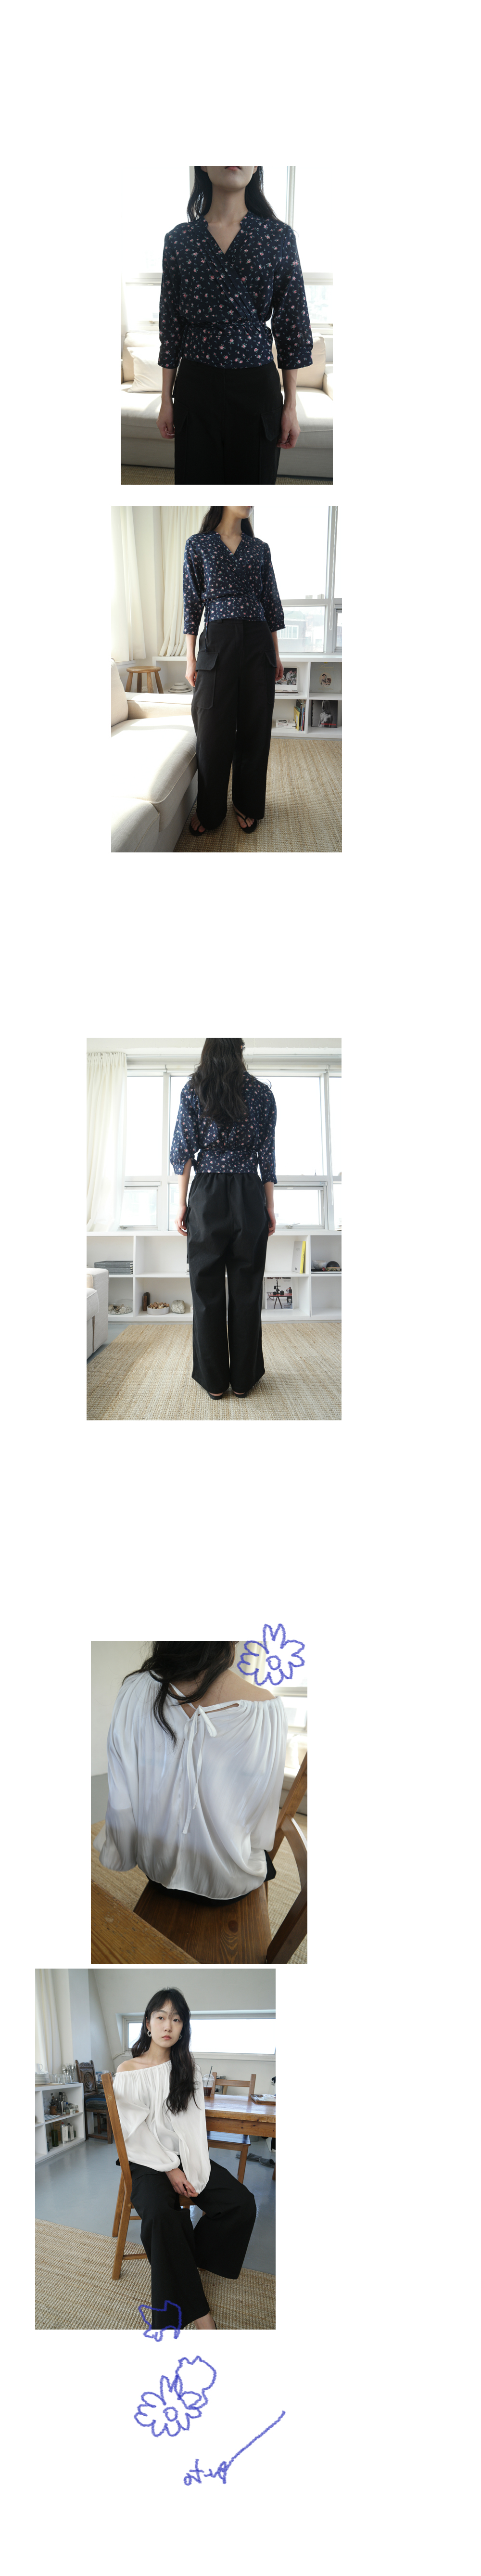 high-waist pocket pants